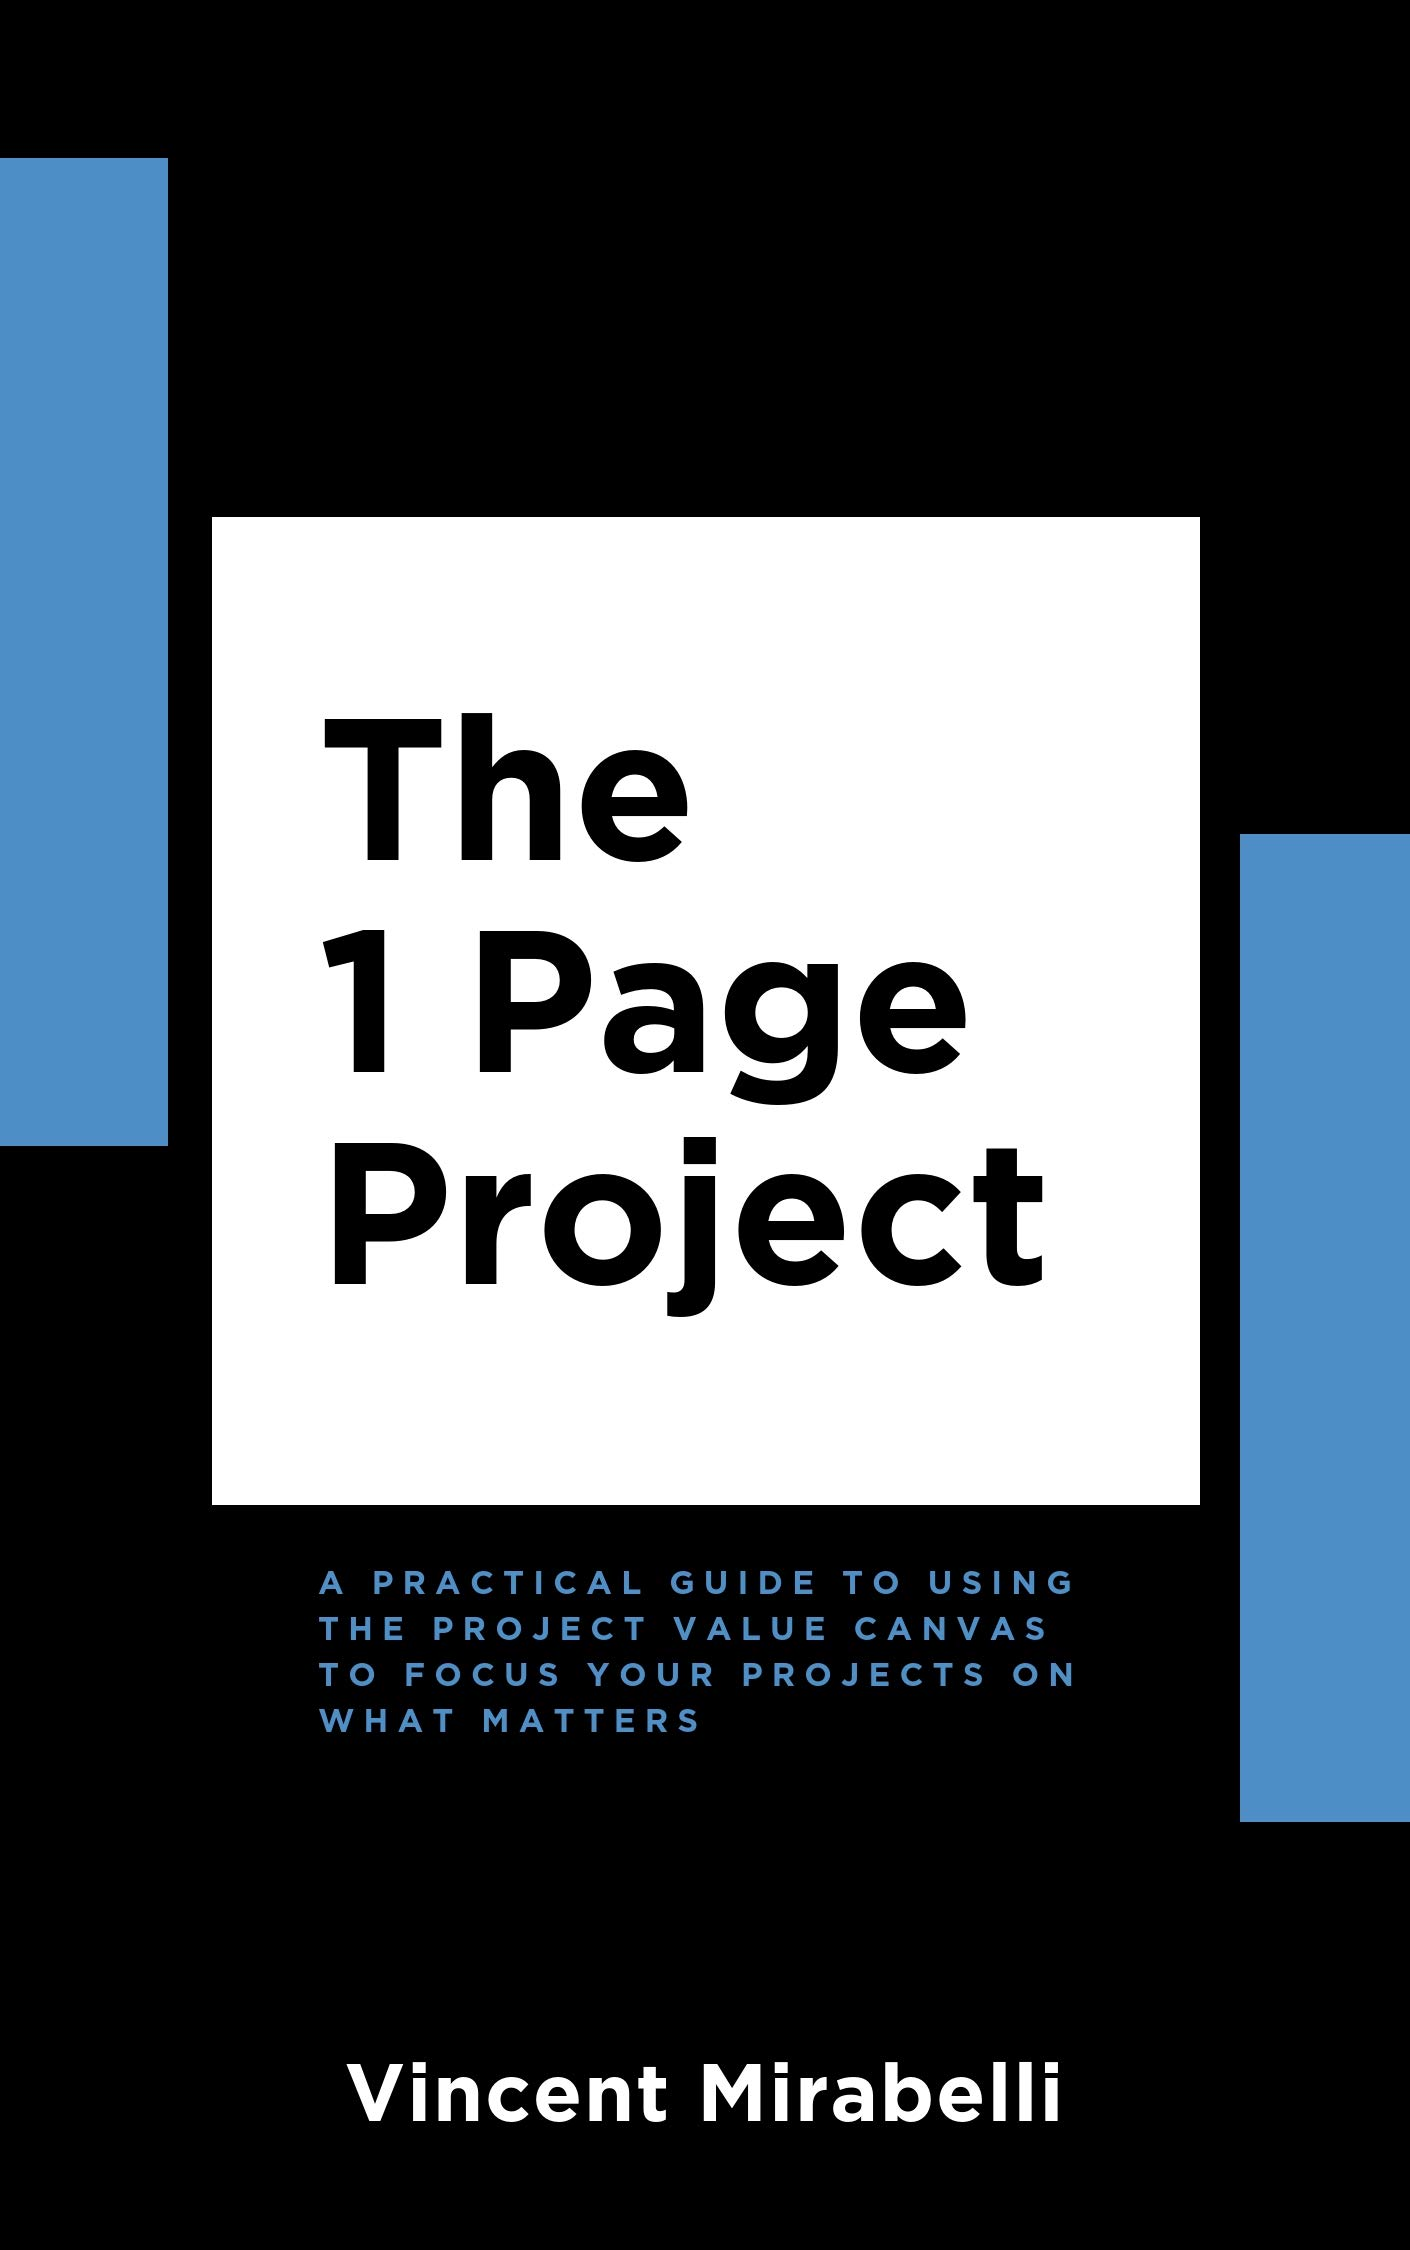 The 1 Page Project: A Practical Guide to Using the Project Value Canvas to Focus Your Projects on What Matters